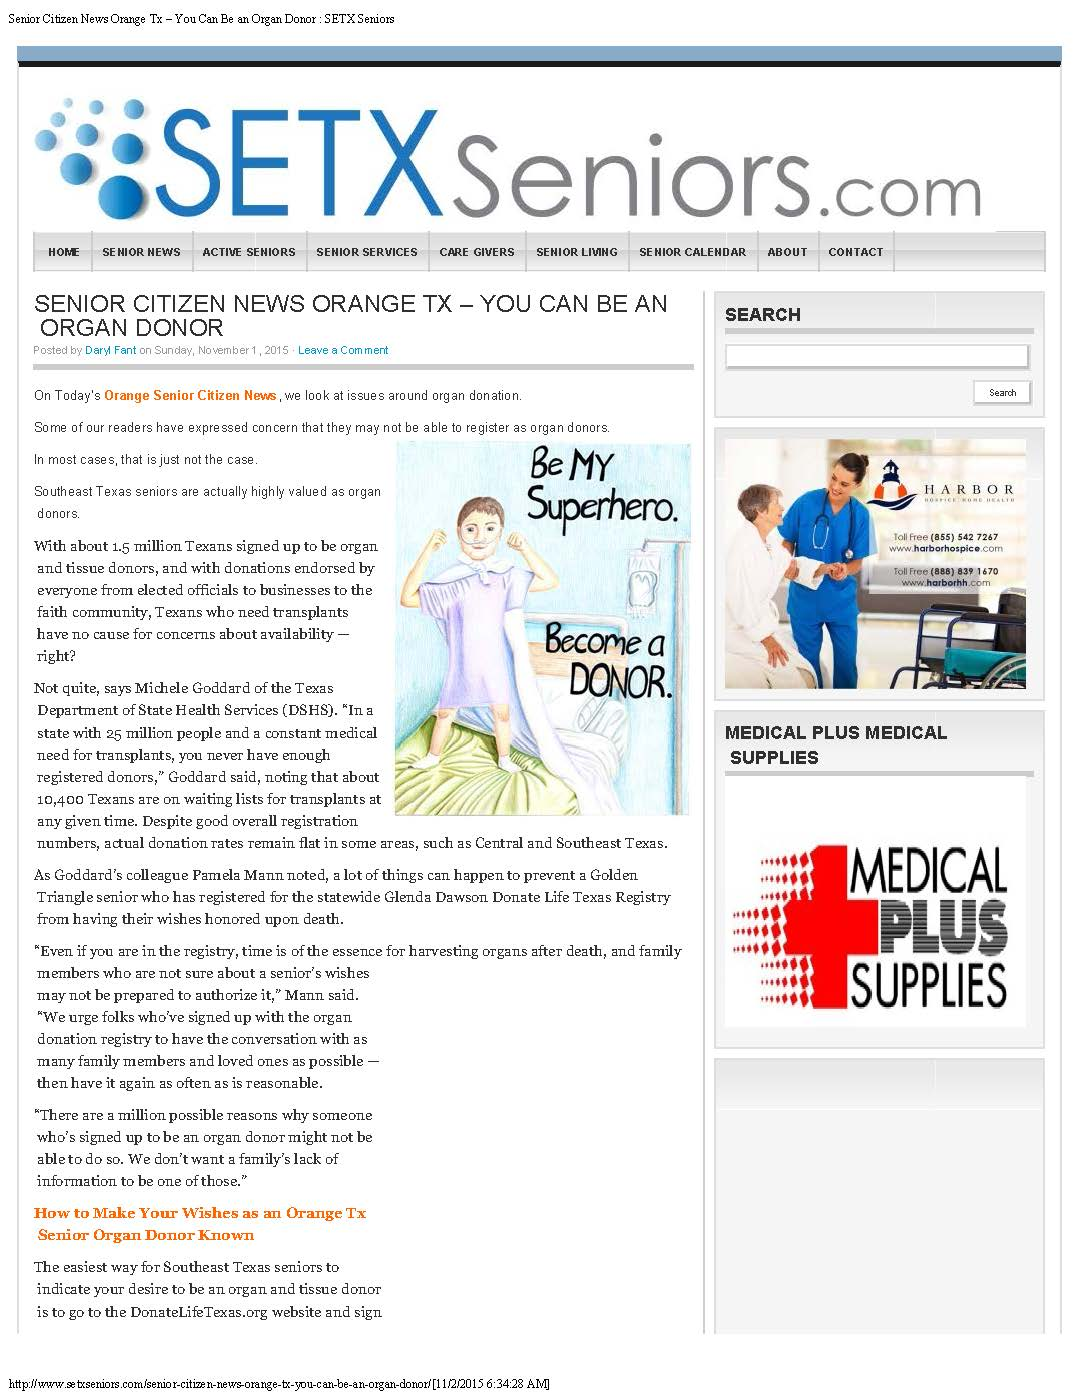 senior magazine Southeast Texas, senior advertising Southeast Texas, advertising agency Southeast Texas, advertising media Beaumont TX